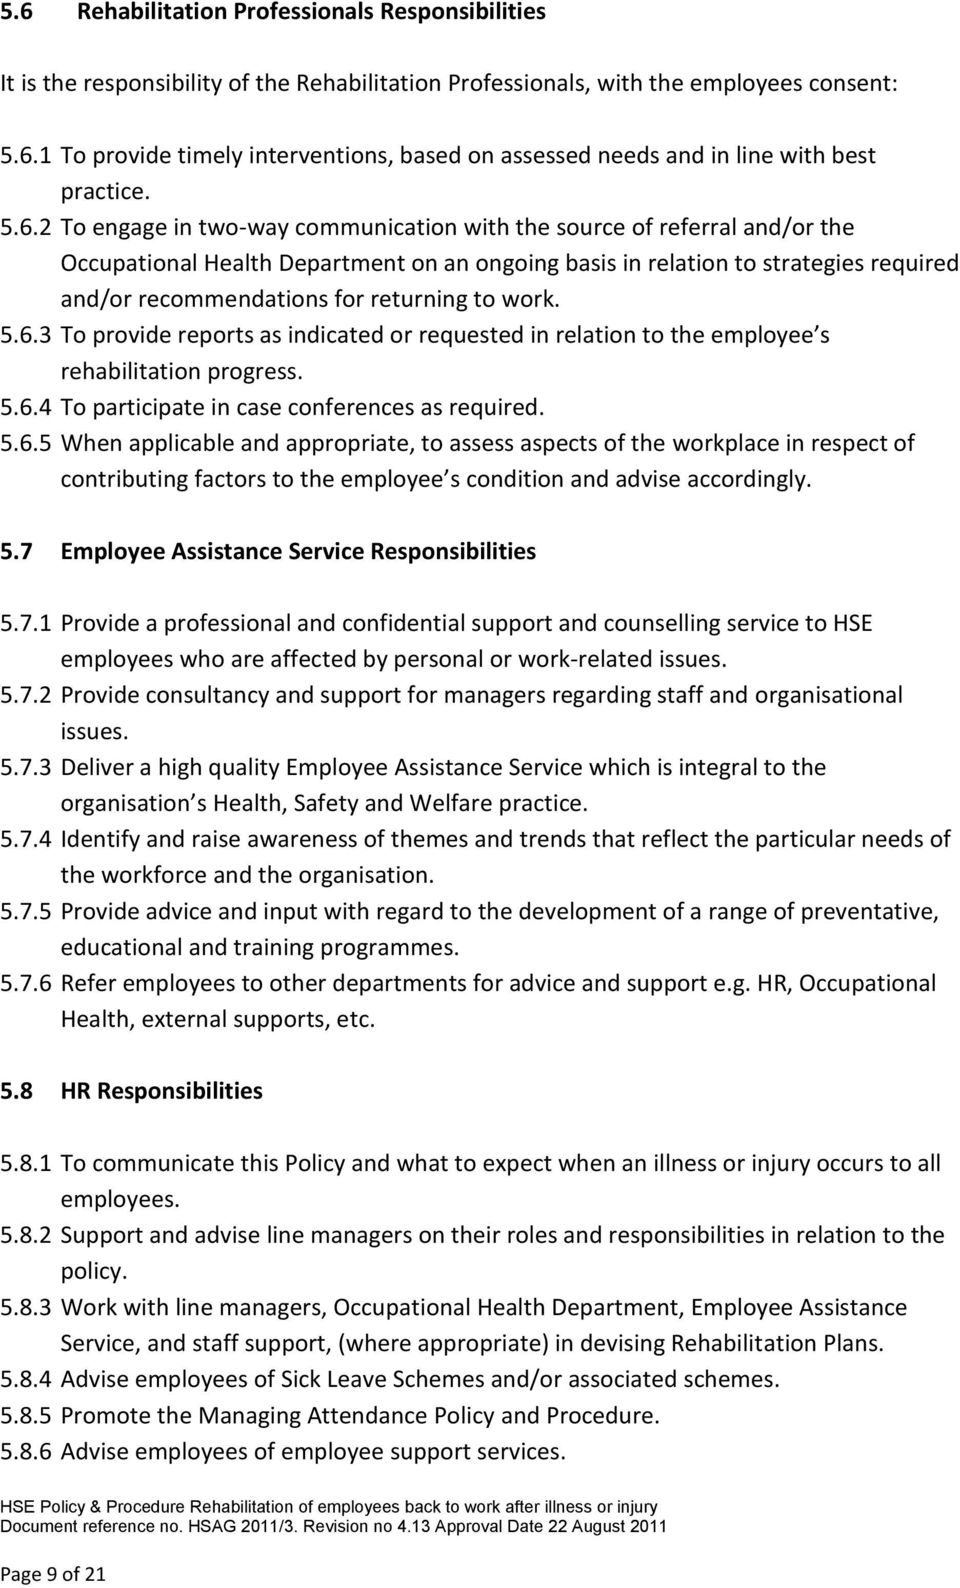 returning to work. 5.6.3 To provide reports as indicated or requested in relation to the employee s rehabilitation progress. 5.6.4 To participate in case conferences as required. 5.6.5 When applicable and appropriate, to assess aspects of the workplace in respect of contributing factors to the employee s condition and advise accordingly.